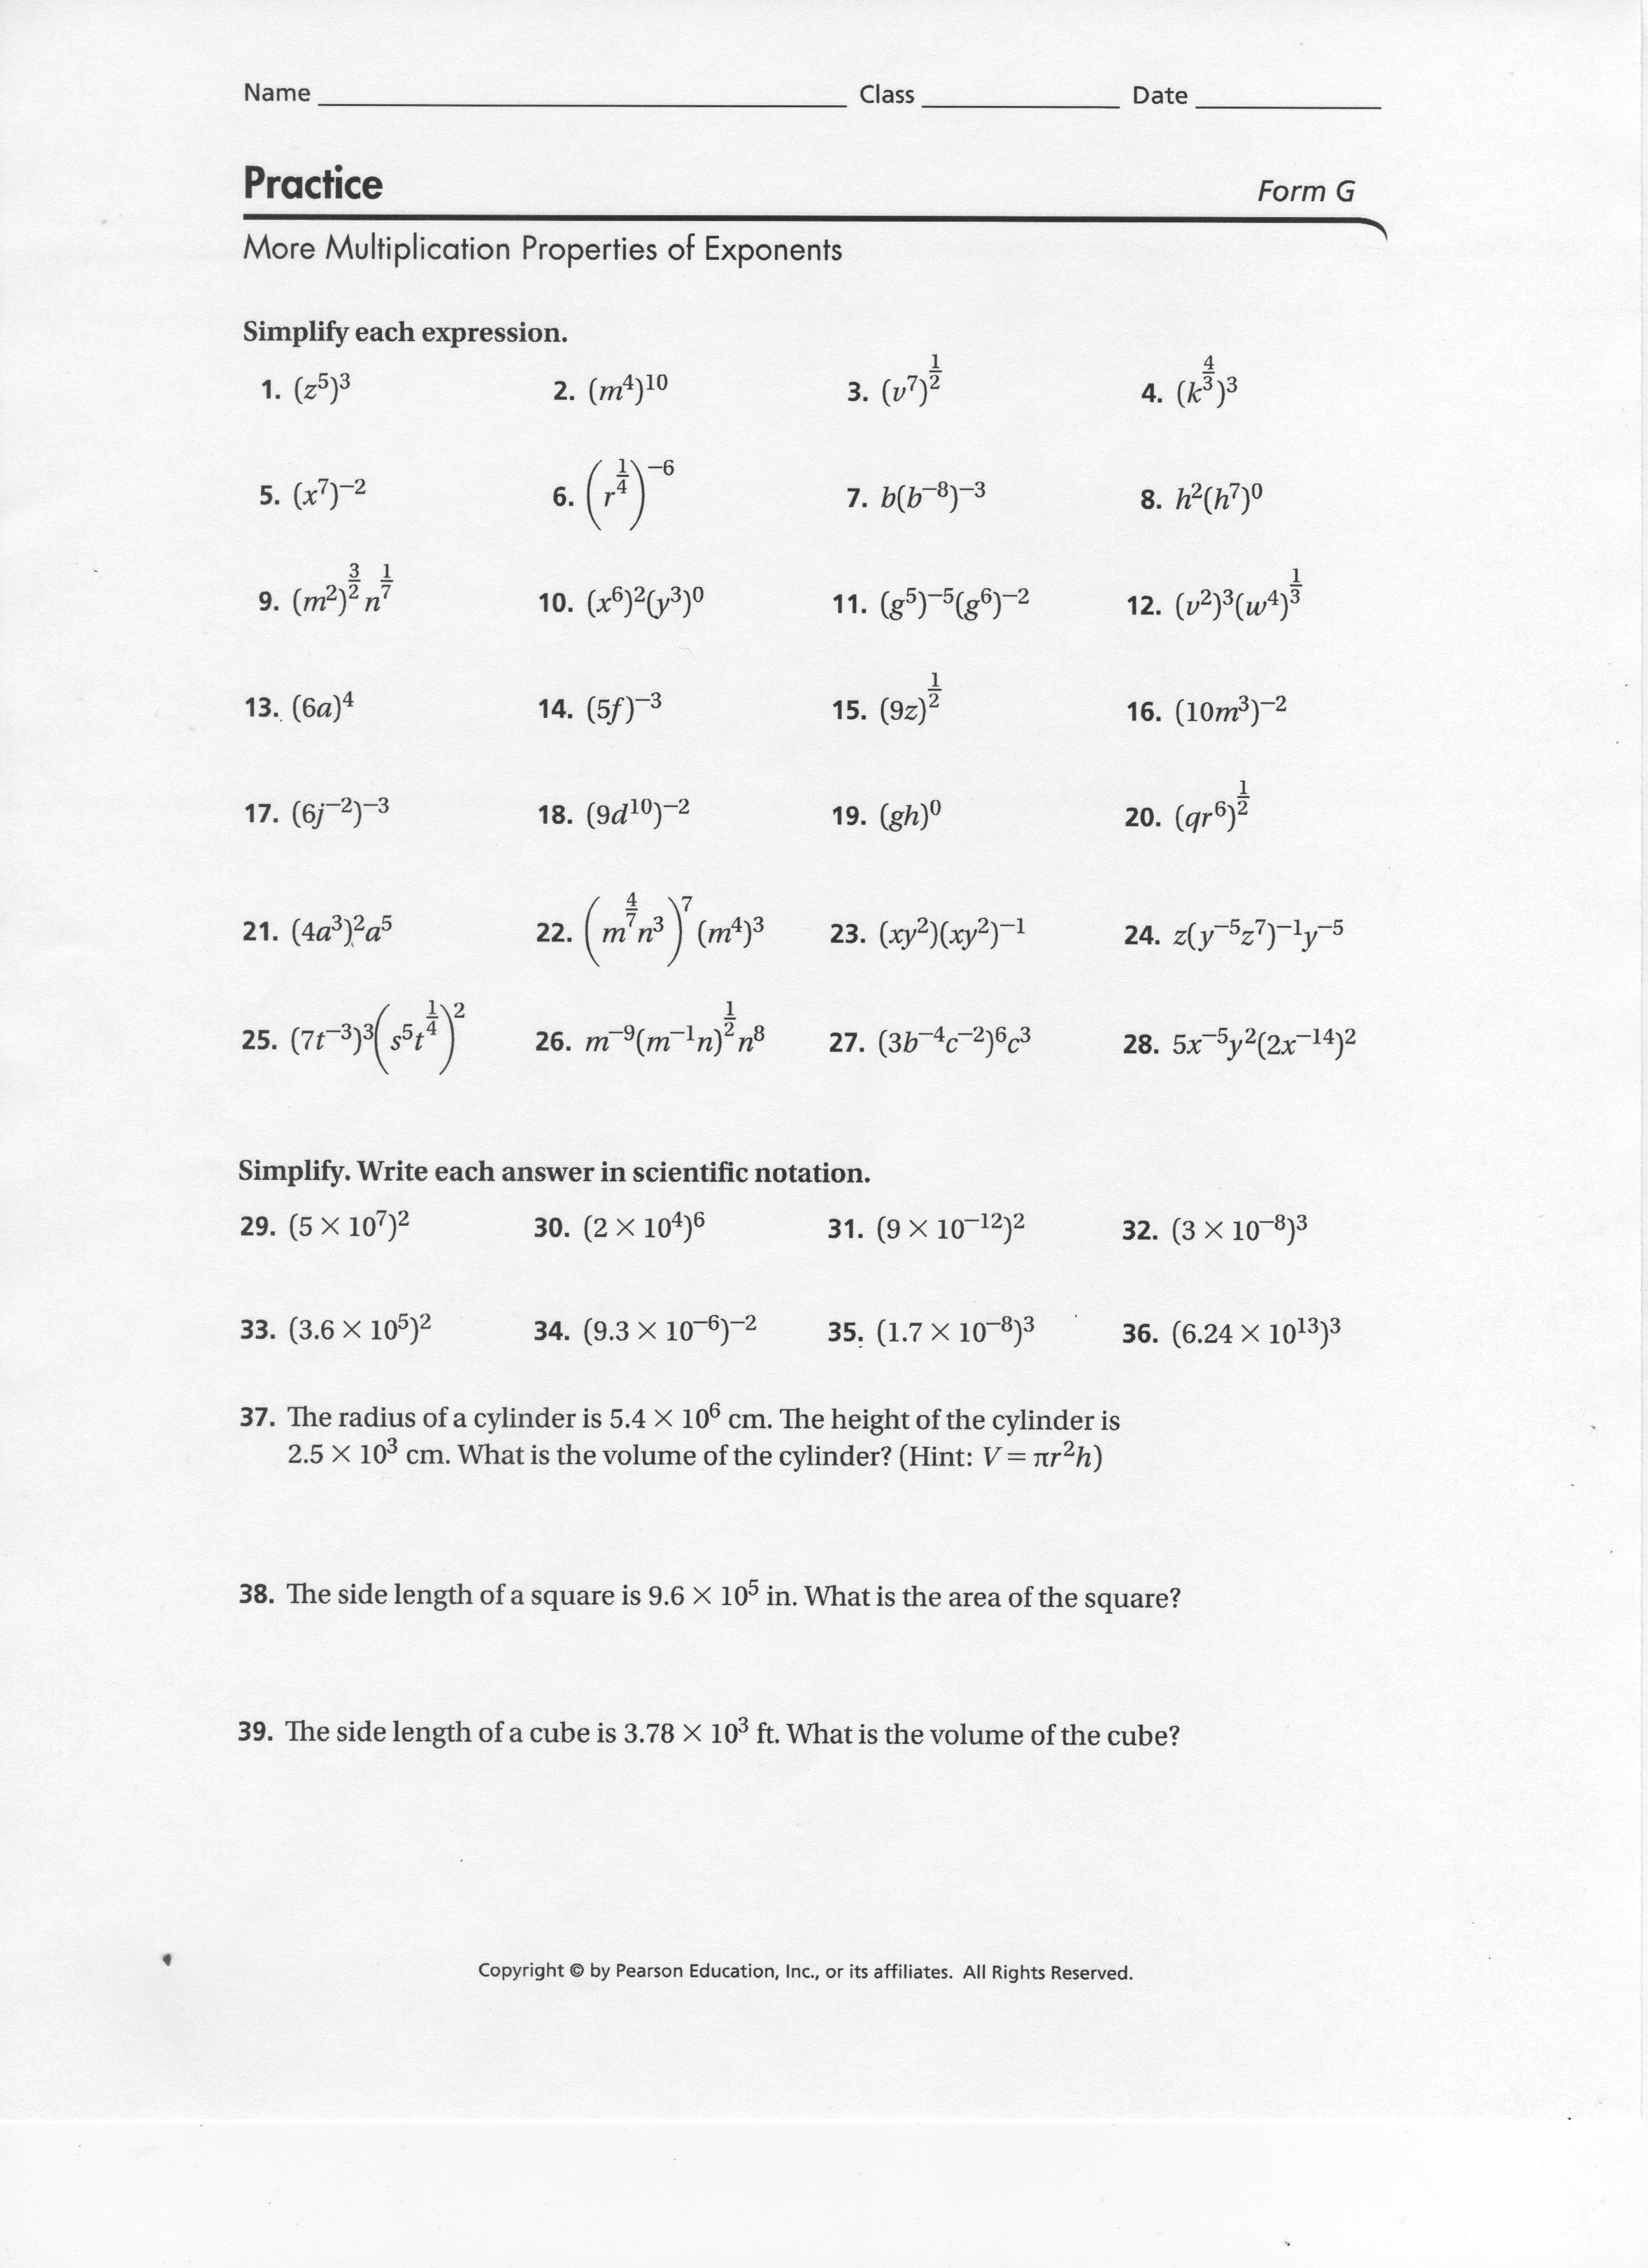 Division Properties Of Exponents Worksheet Answers Math Worksheets